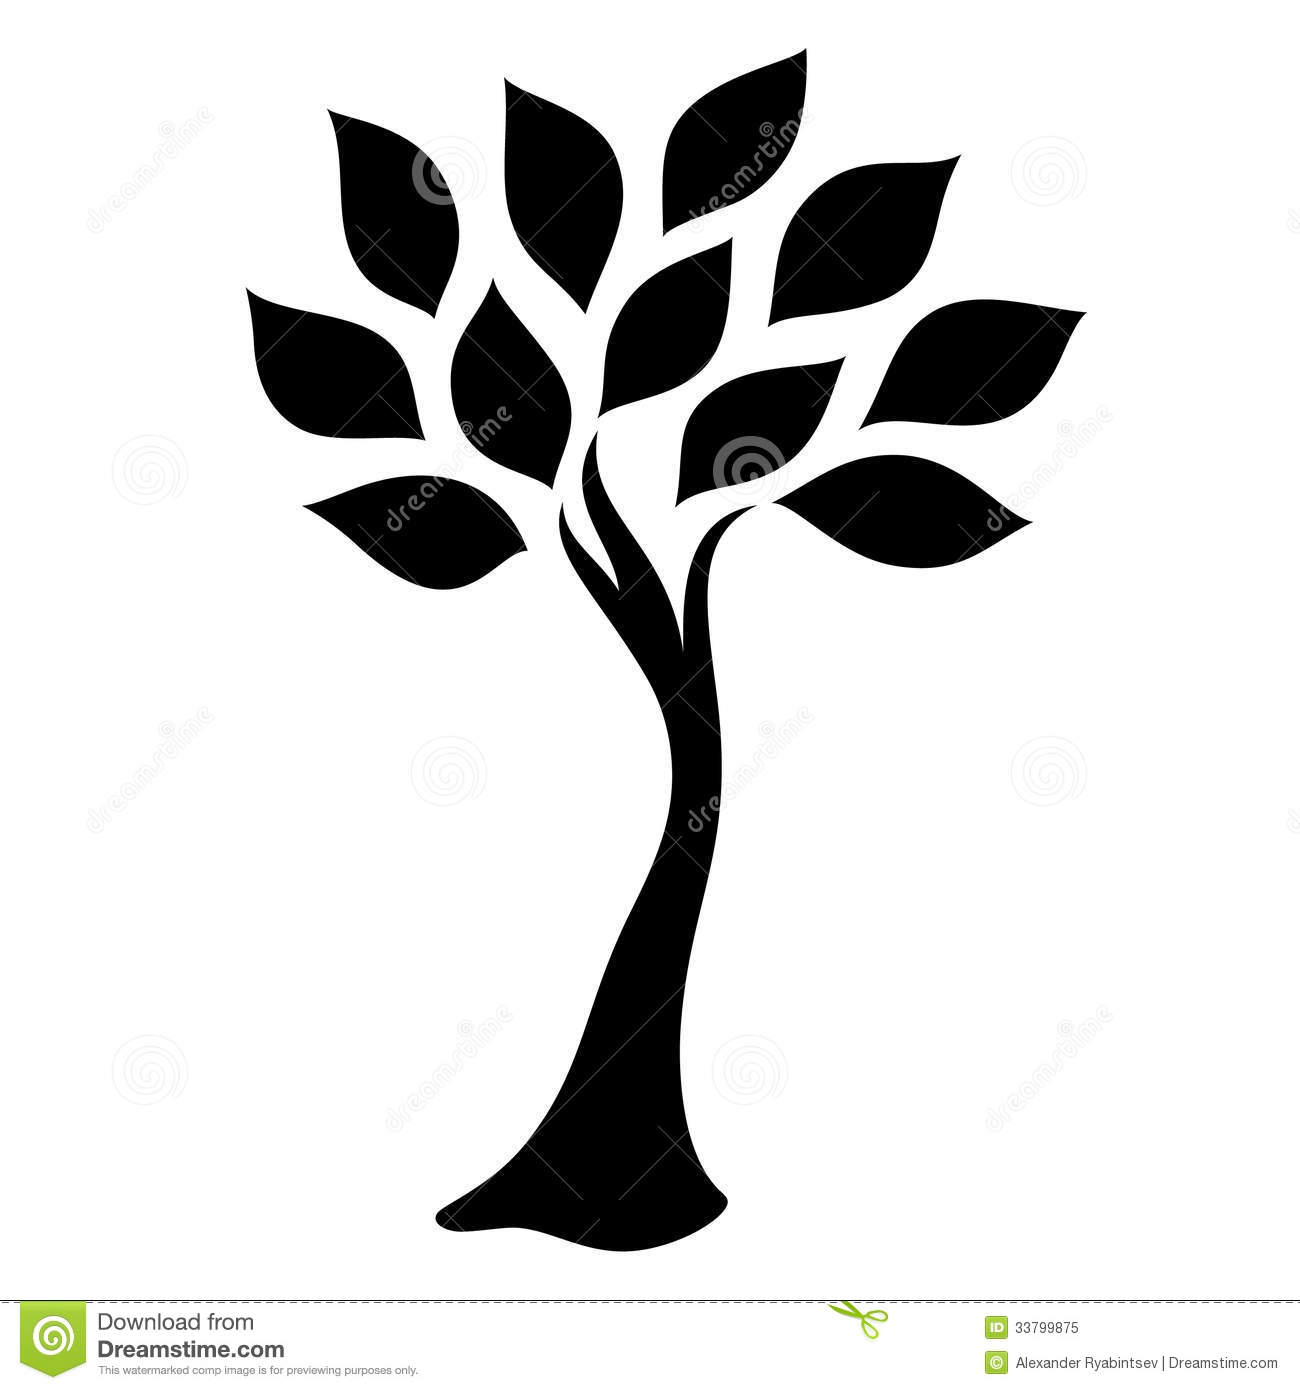 Black Tree Silhouette Isolated On White Background Royalty Free Stock ...